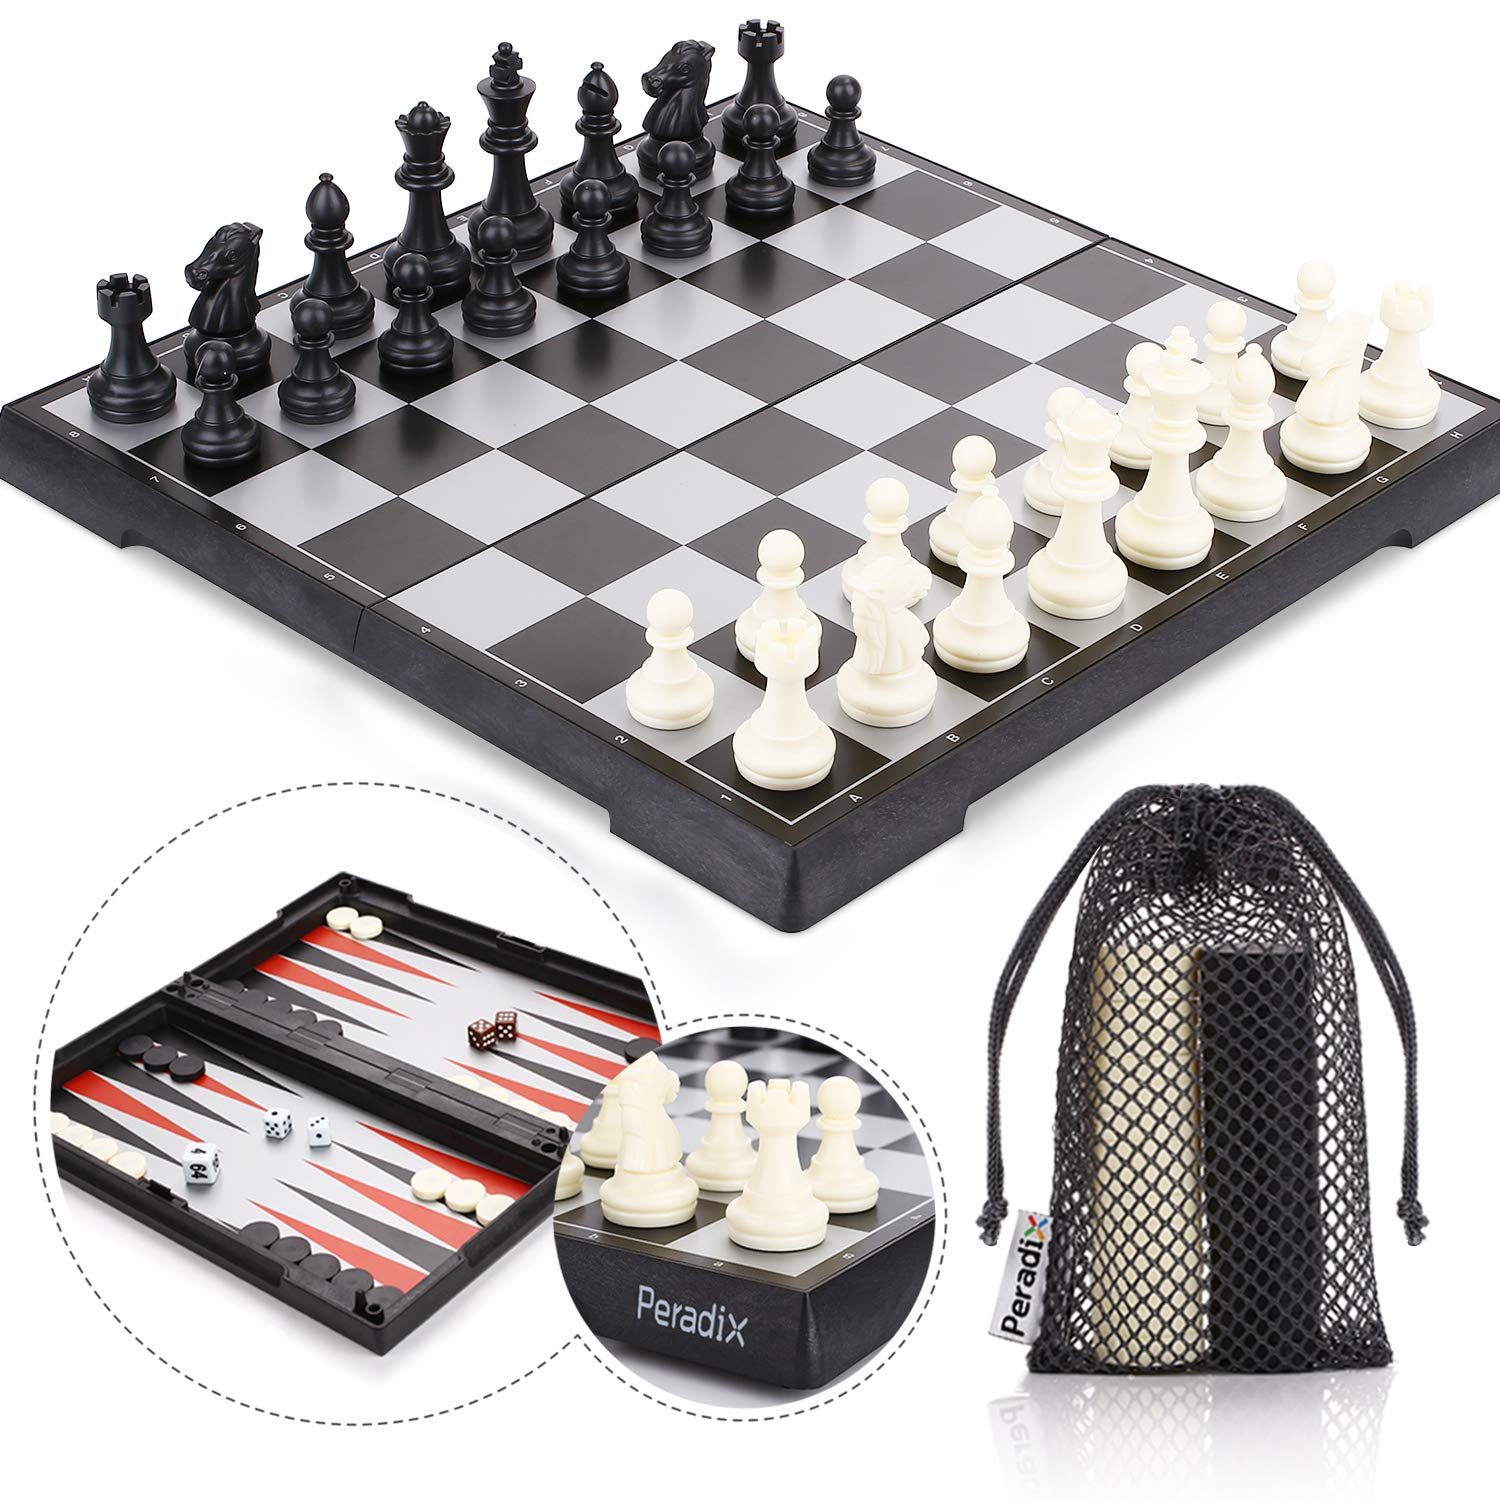 Peradix Magnetic Folding Travel Chess Board, 3 in 1 Staunton Chess Set, Magnetic Chess & Checkers & Backgammon Pieces, Easy to Storage and Carry, Perfect Learning Toys for Kids and Adults